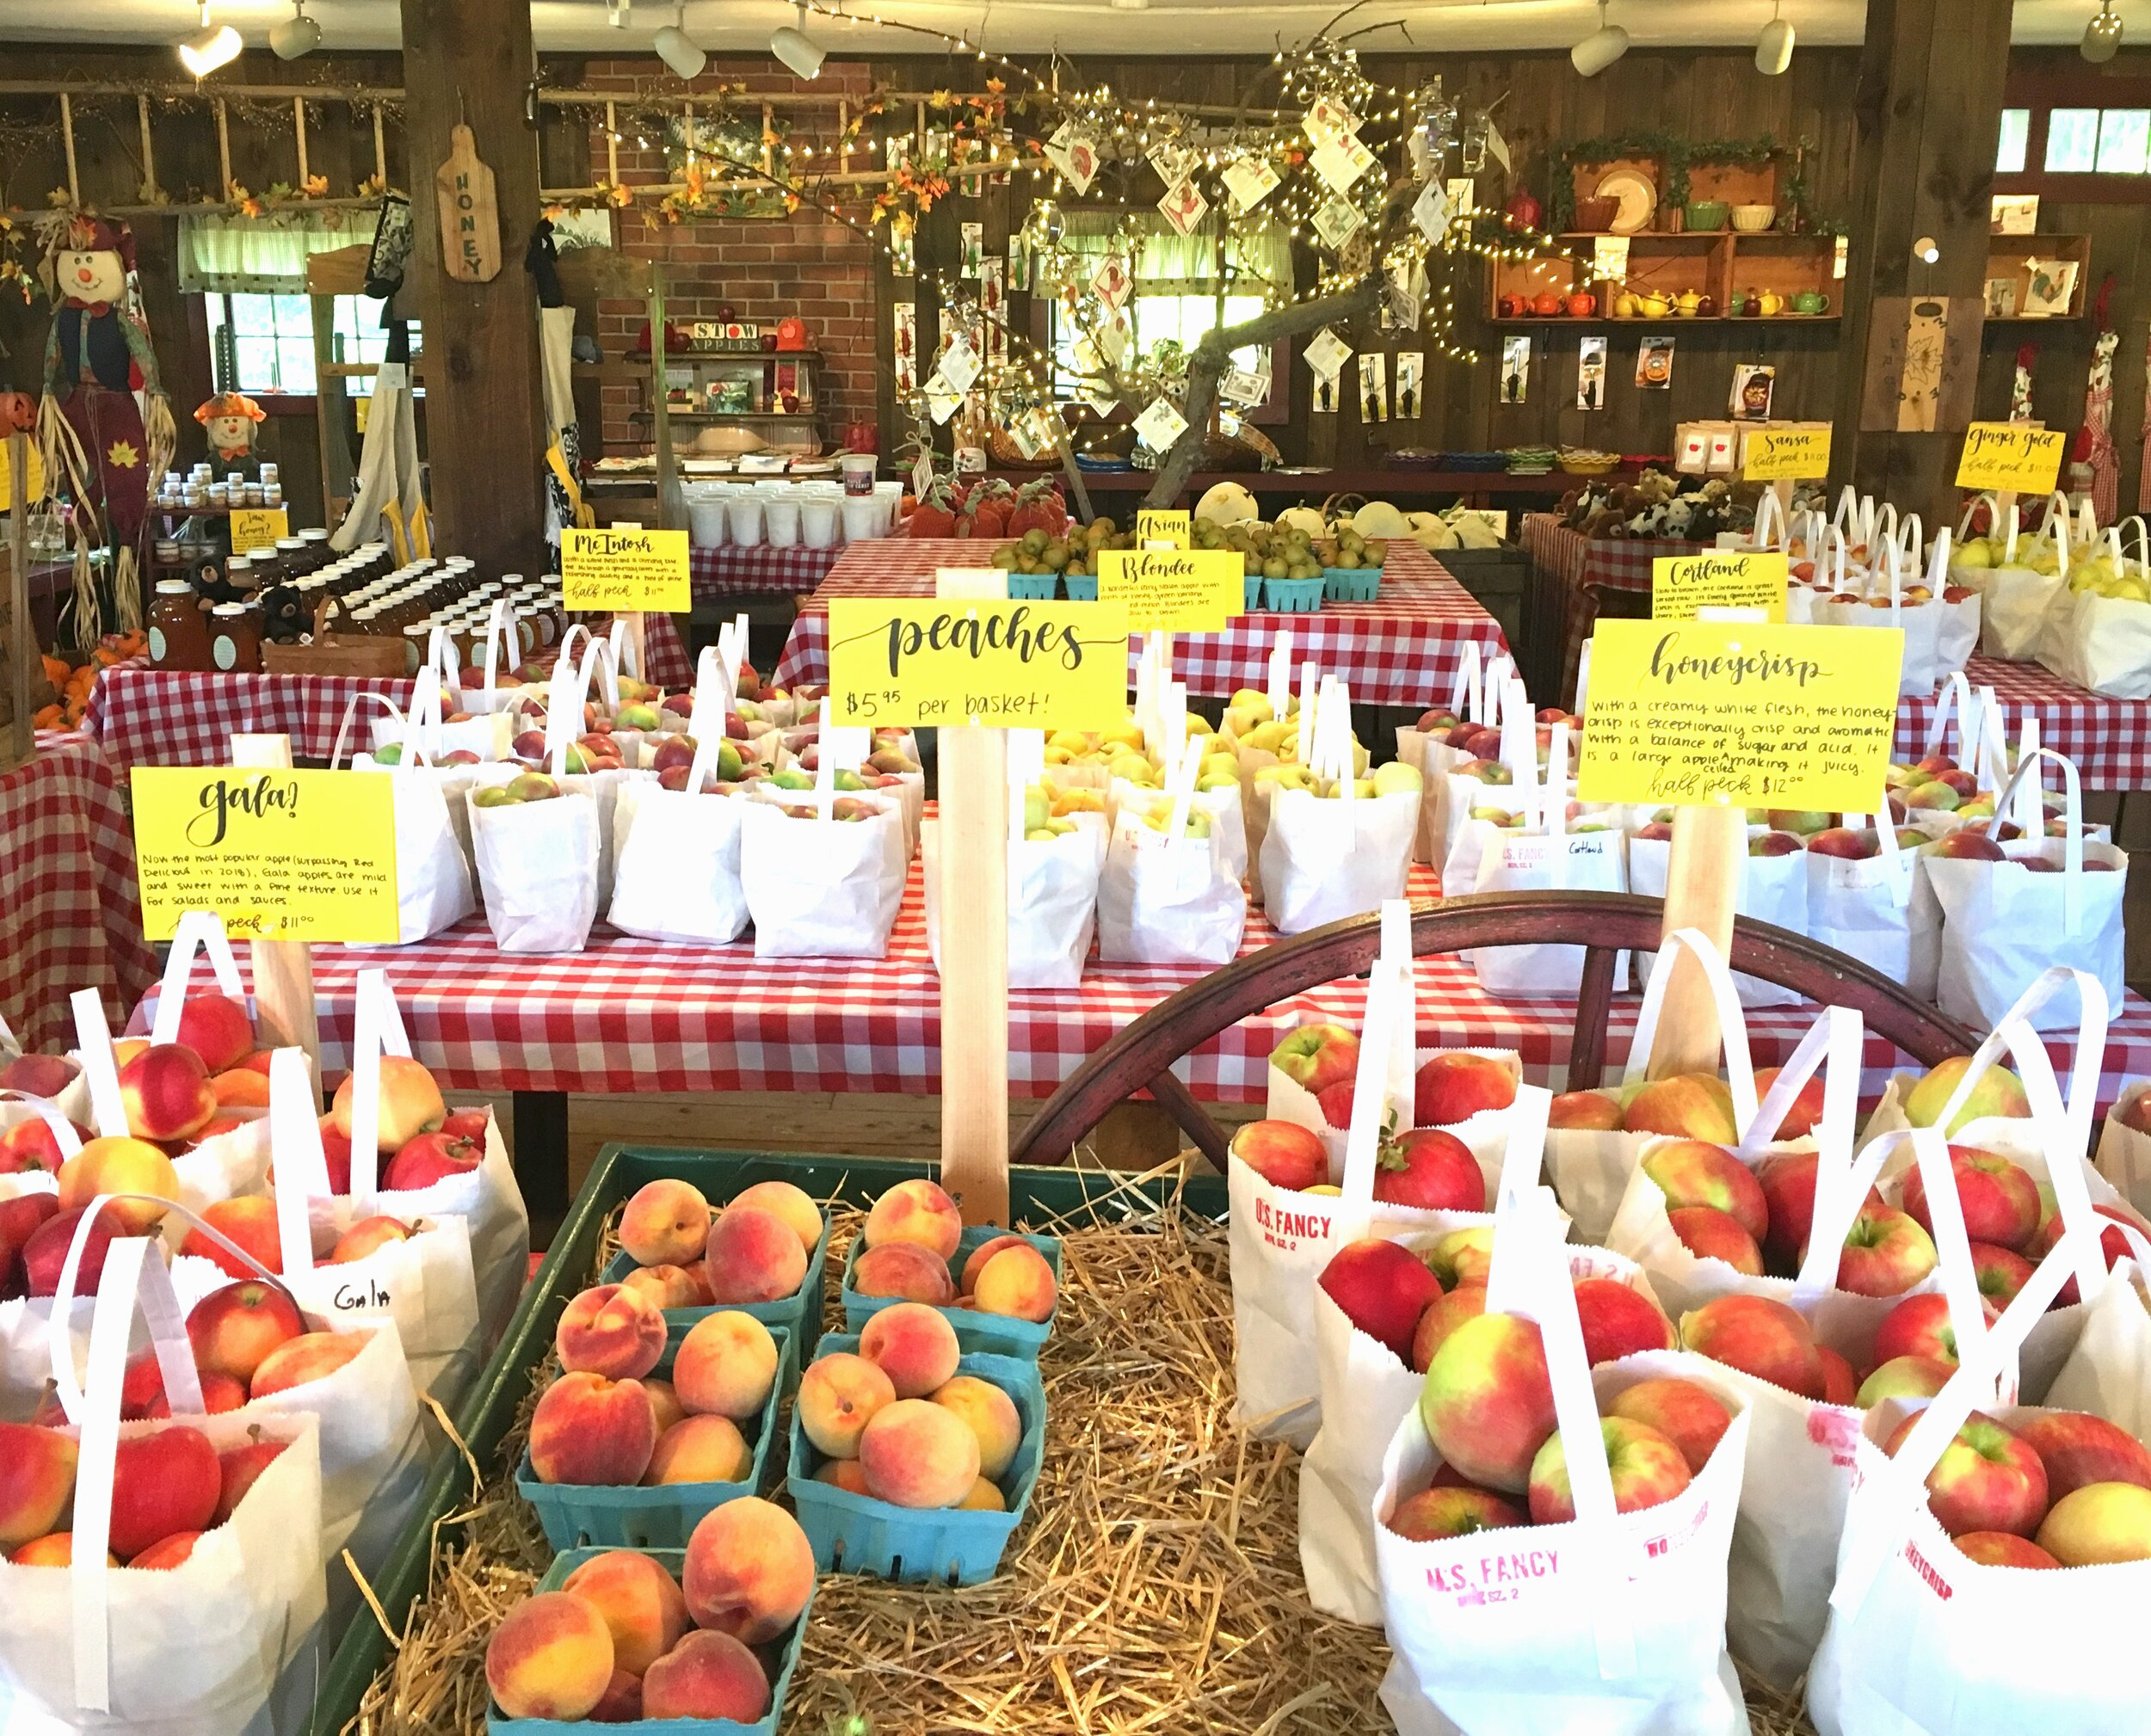 The farm store has dozens of types of apples including some rare heirloom varieties